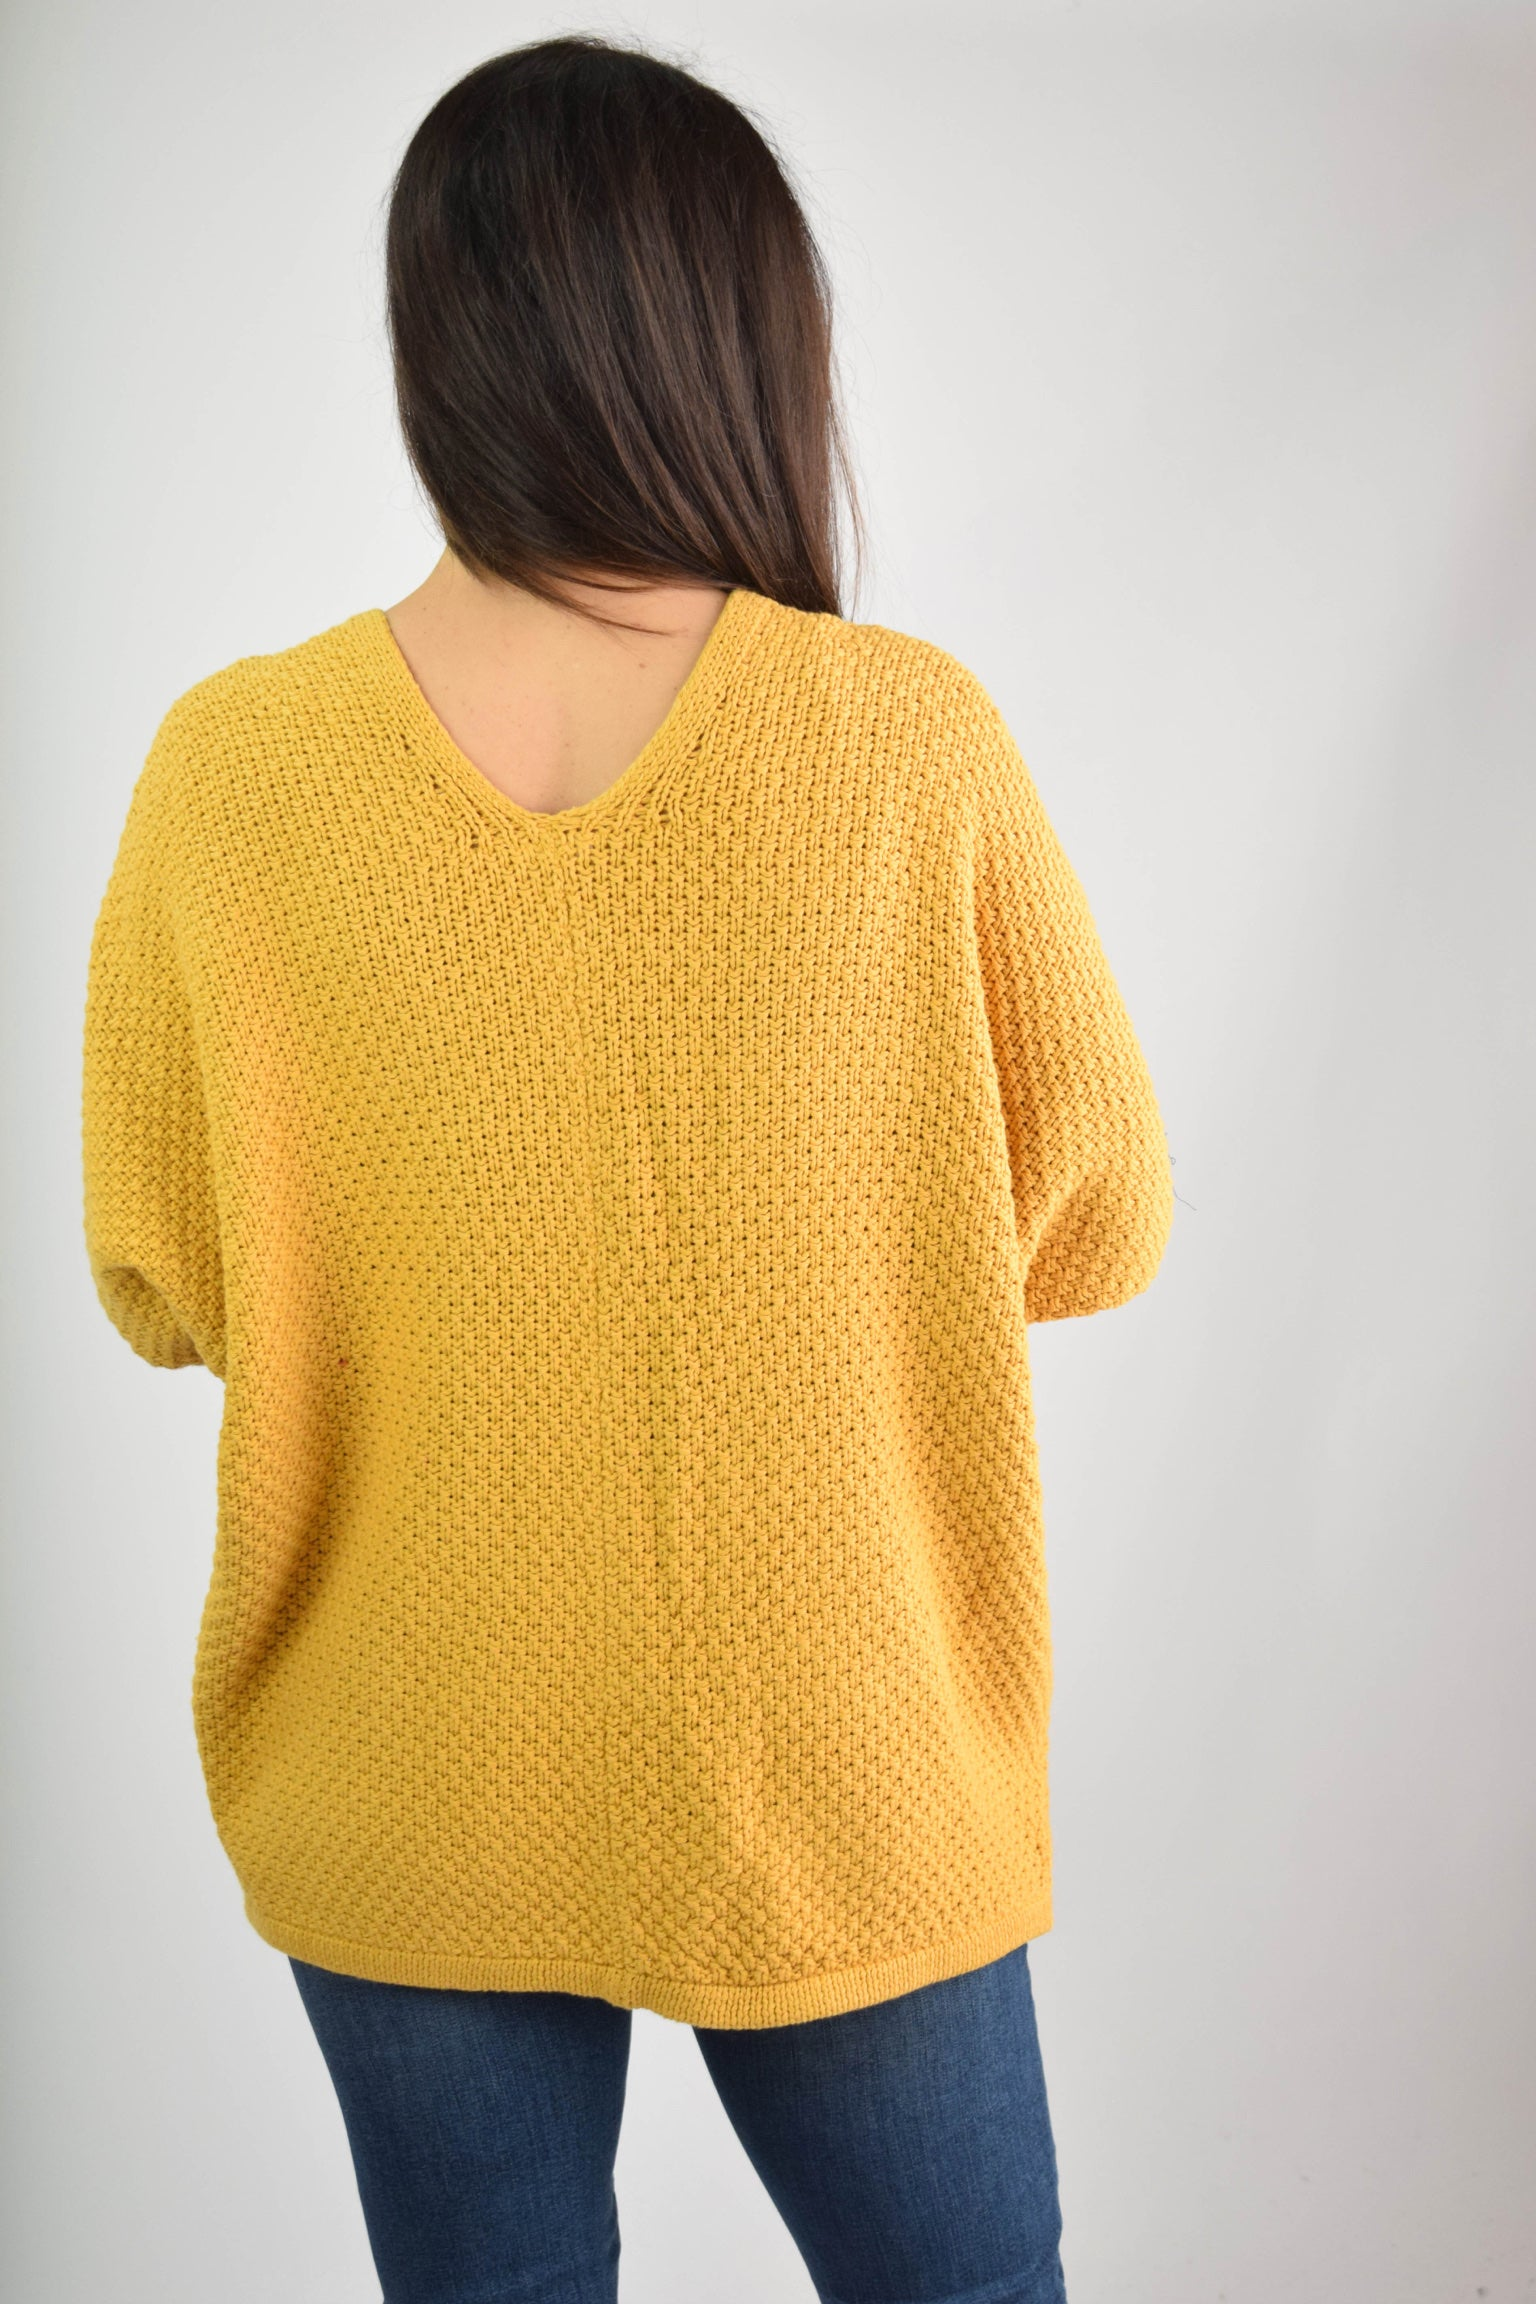 Wild Honey Mustard Knit Cardigan